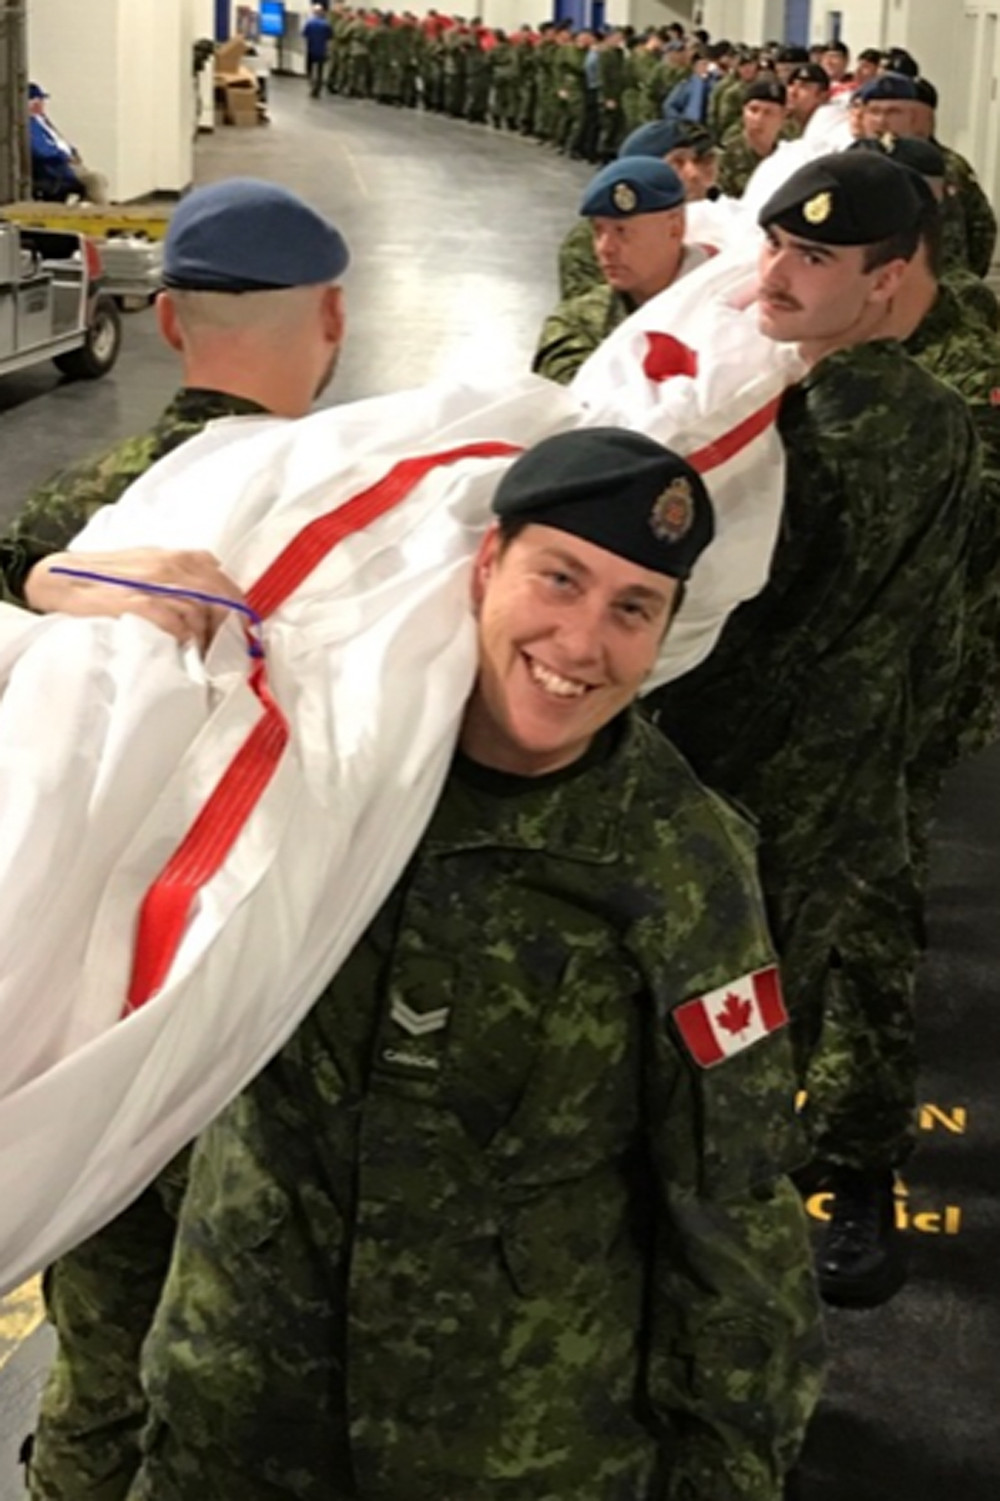 Then Corporal Ireland was honoured to be part of the opening ceremonies on Military Appreciation Night during the Blue Jays American East League championship series in 2016.